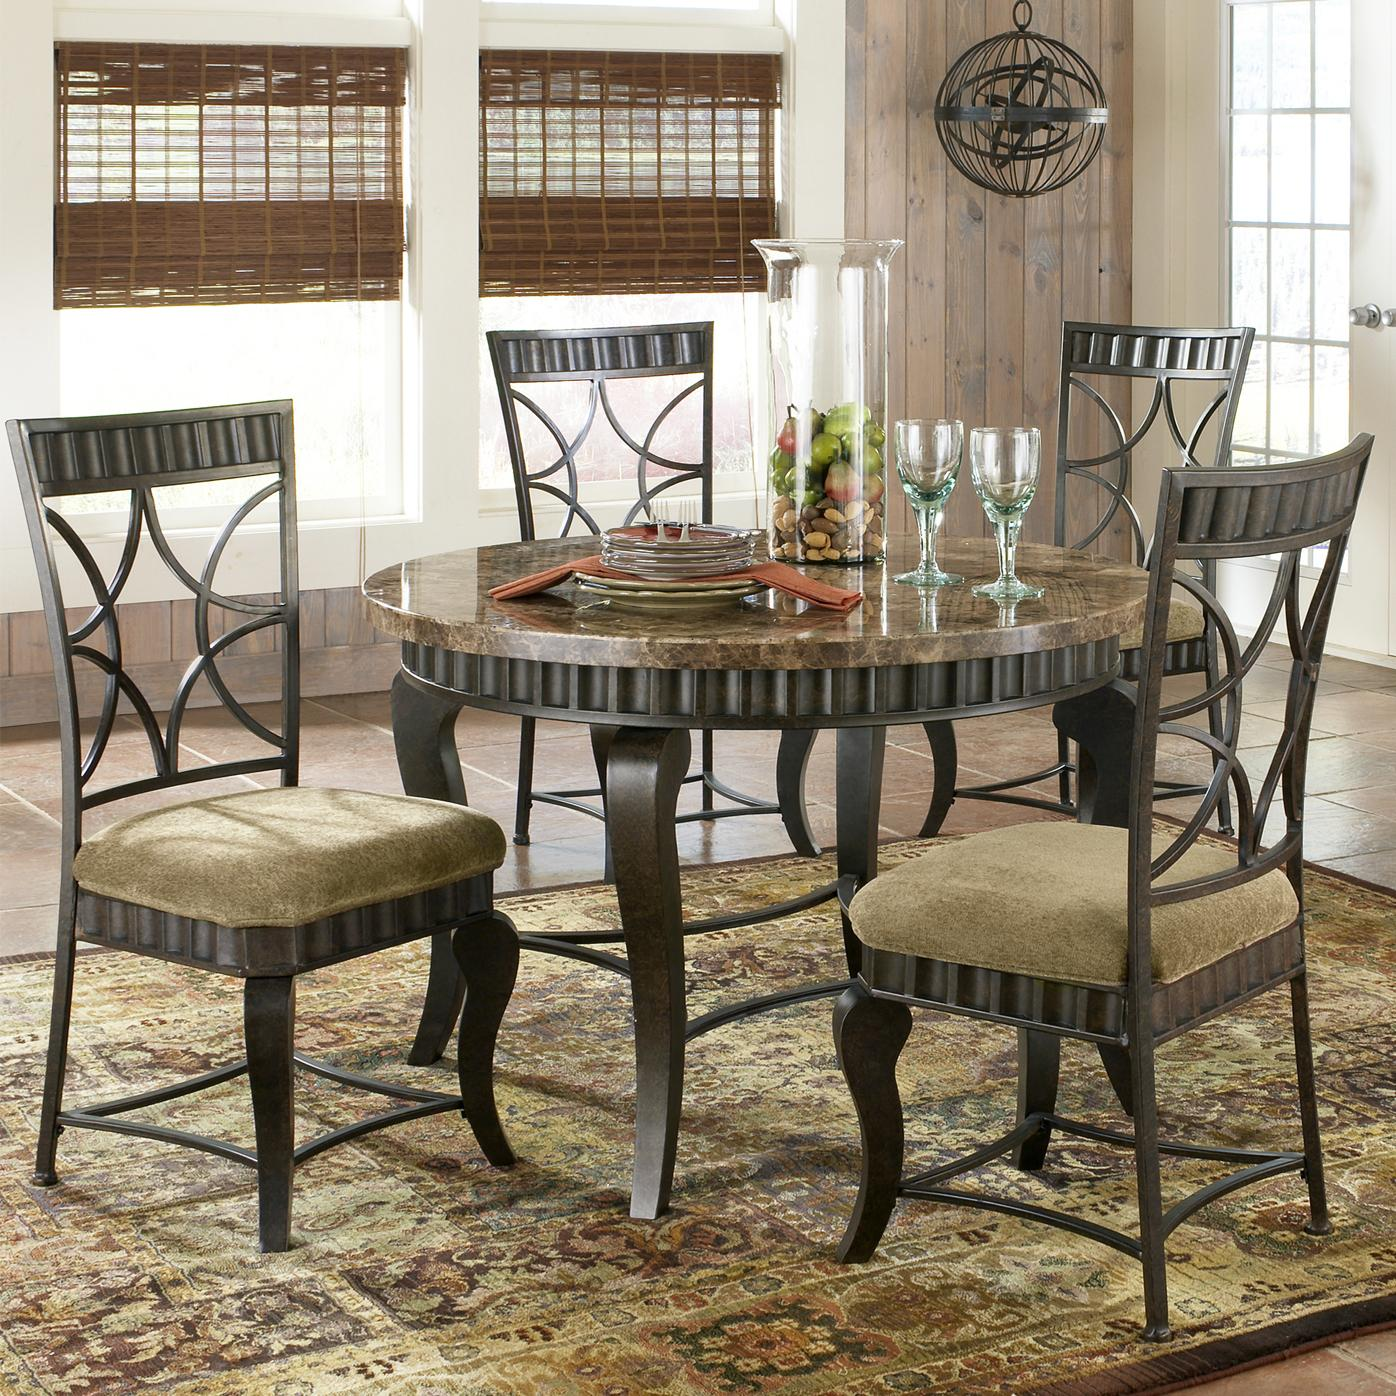 Prime Hamlyn 5 Piece Faux Marble Top Dining Table Set - Item Number HL500T+ & Prime Hamlyn 5 Piece Round Faux Marble Top Metal Dining Table Set ...